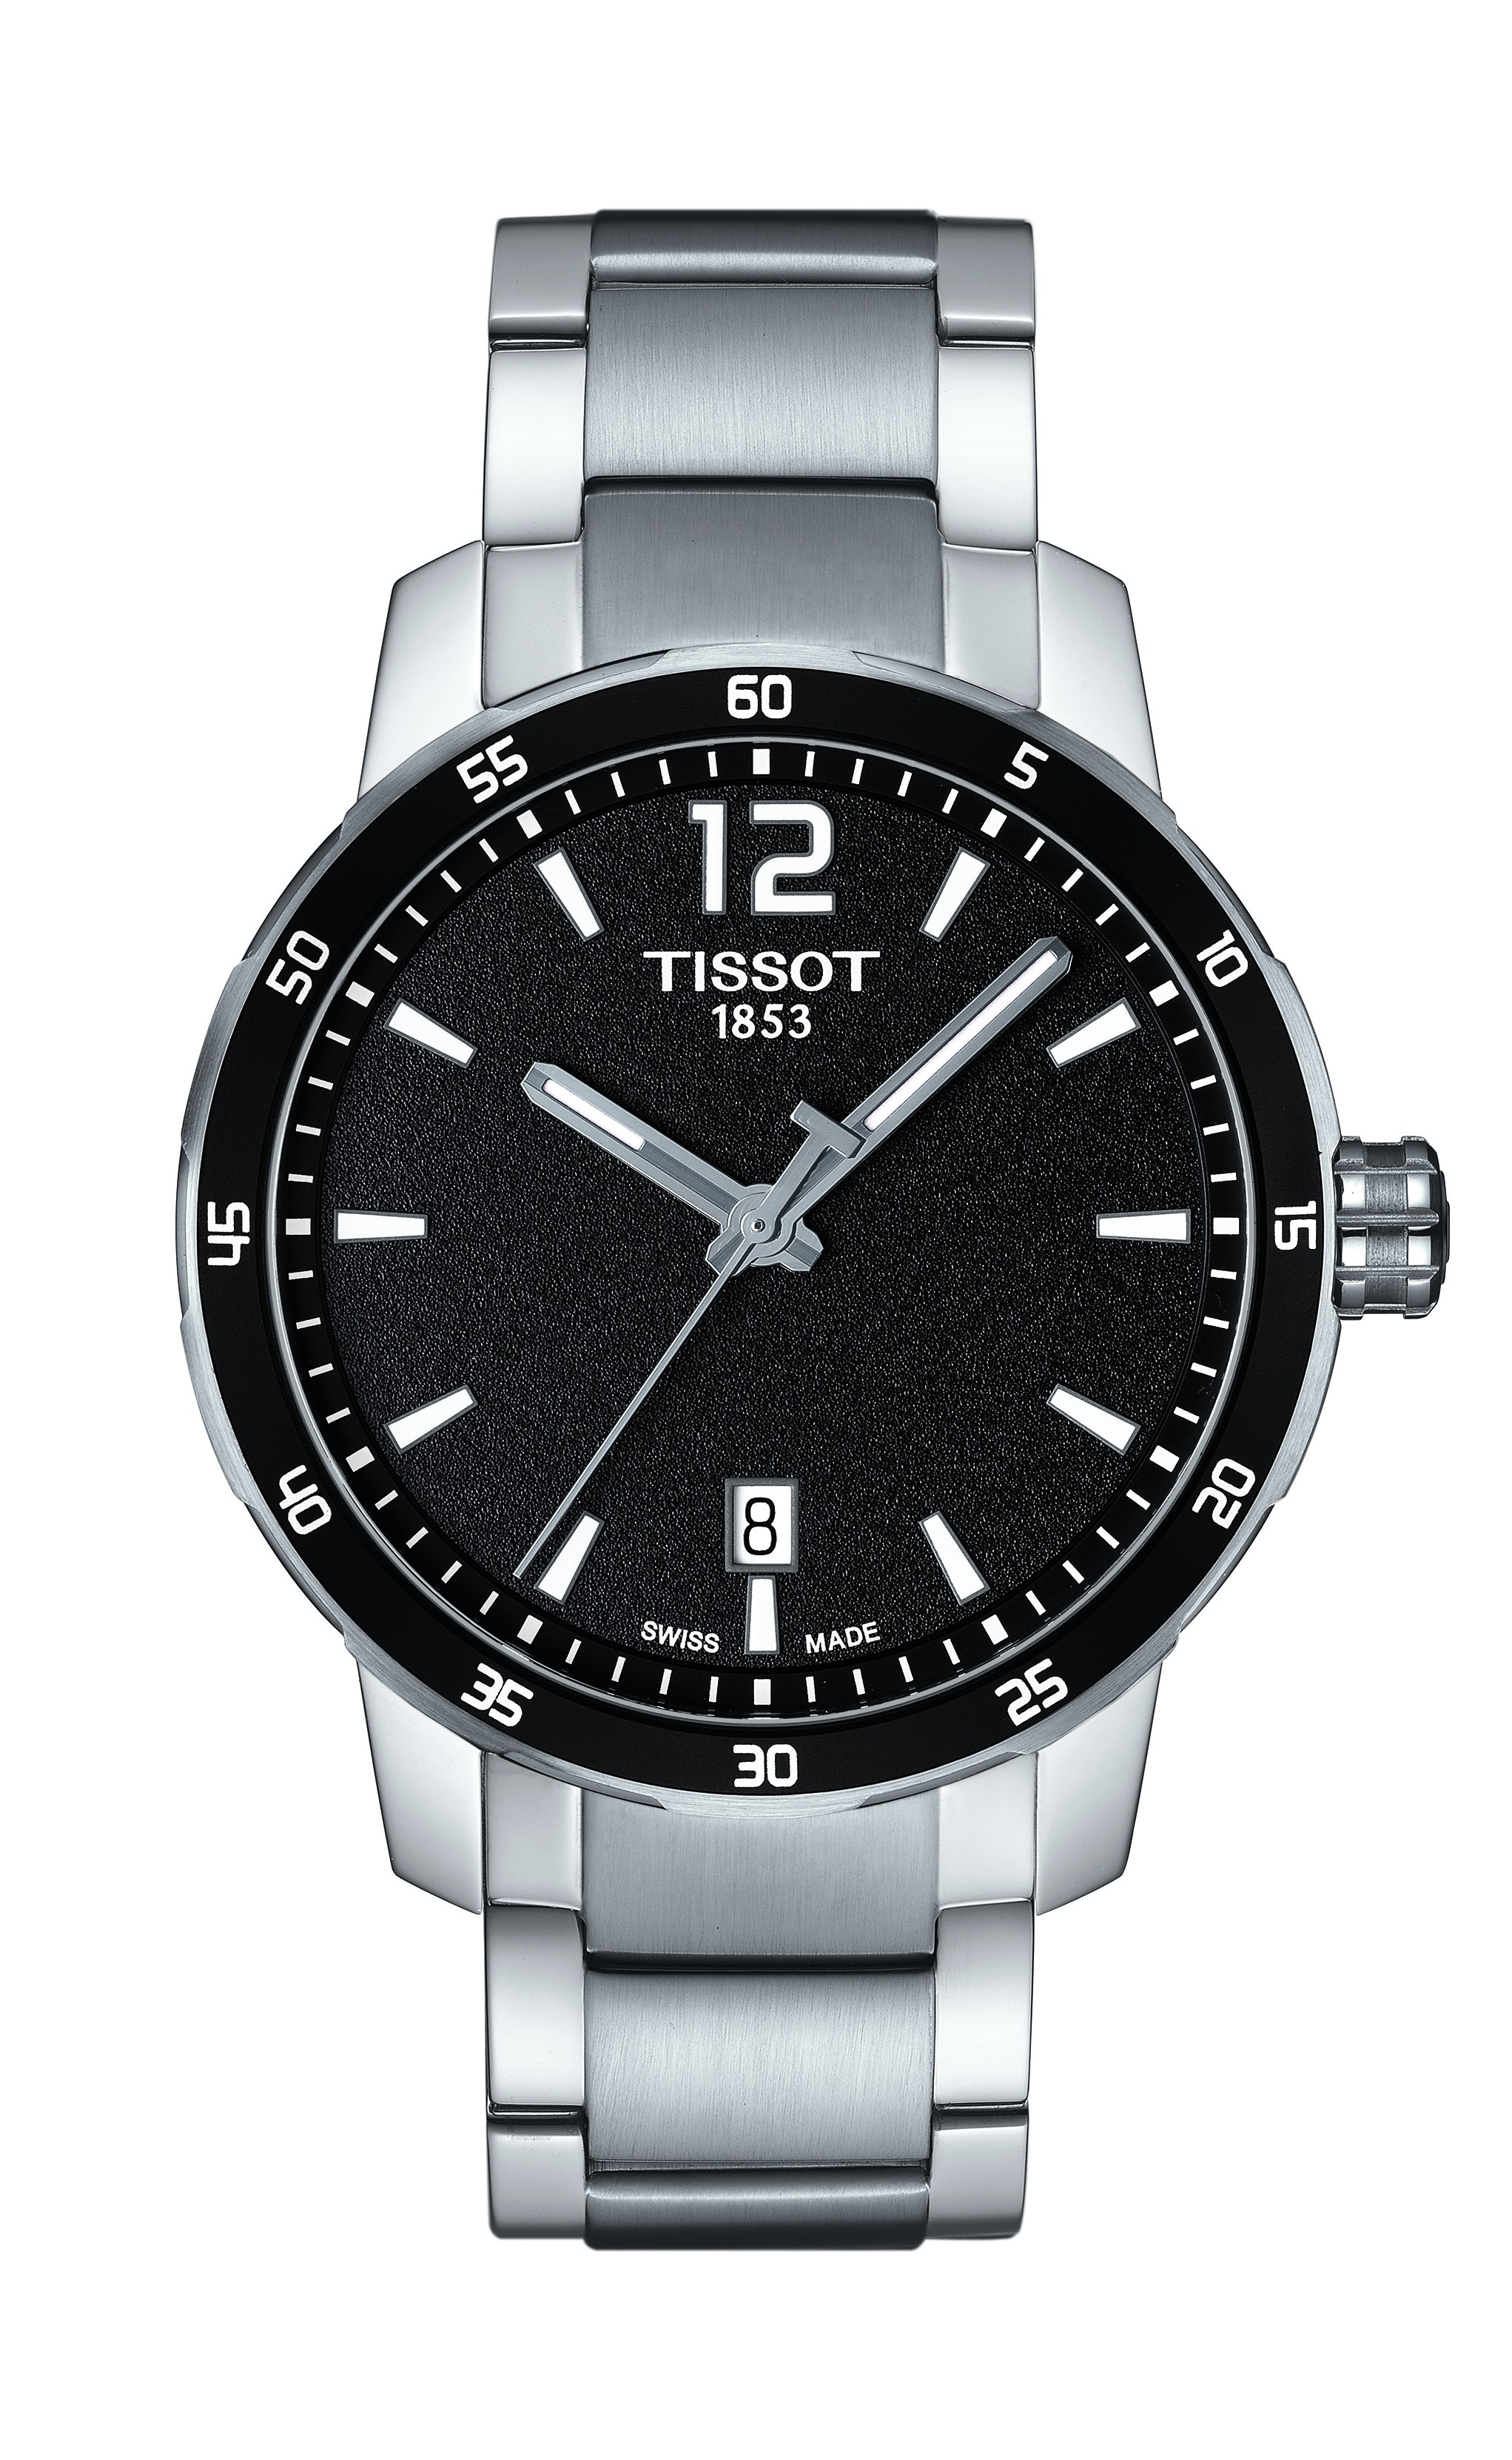 Gnts Stainless Steel Black Dial Quickstar Tissot